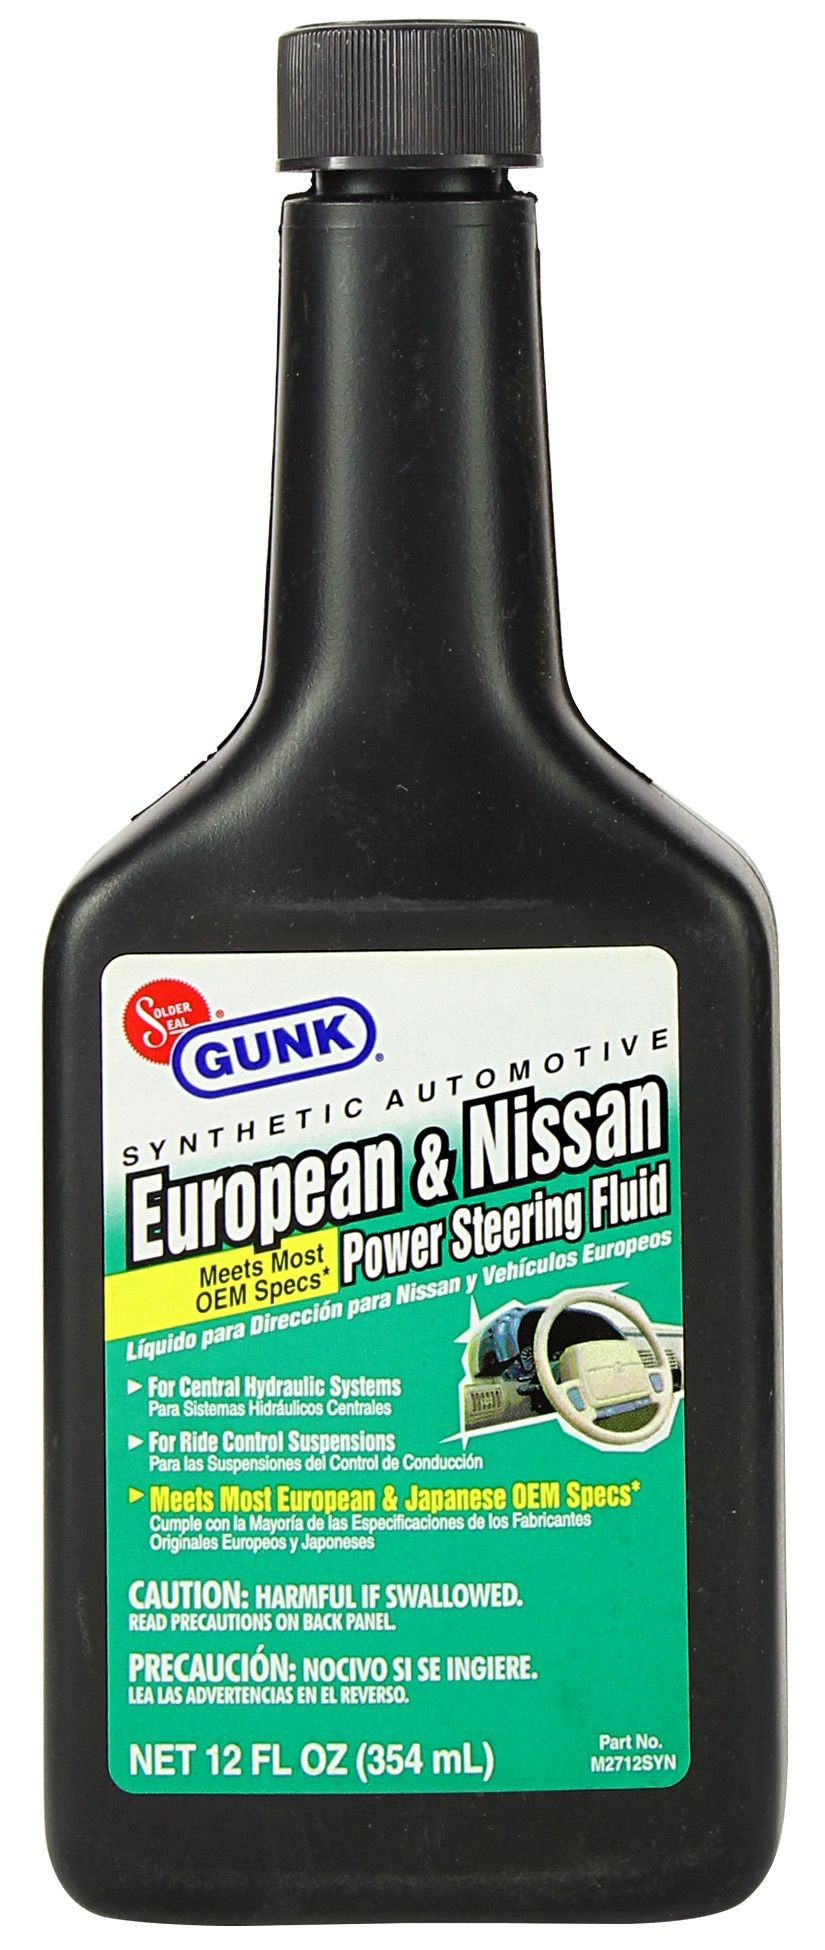 Gunk M2712SYN-12PK Synthetic European & Nissan Power Steering Fluid - 12 oz., (Case of 12) by Gunk